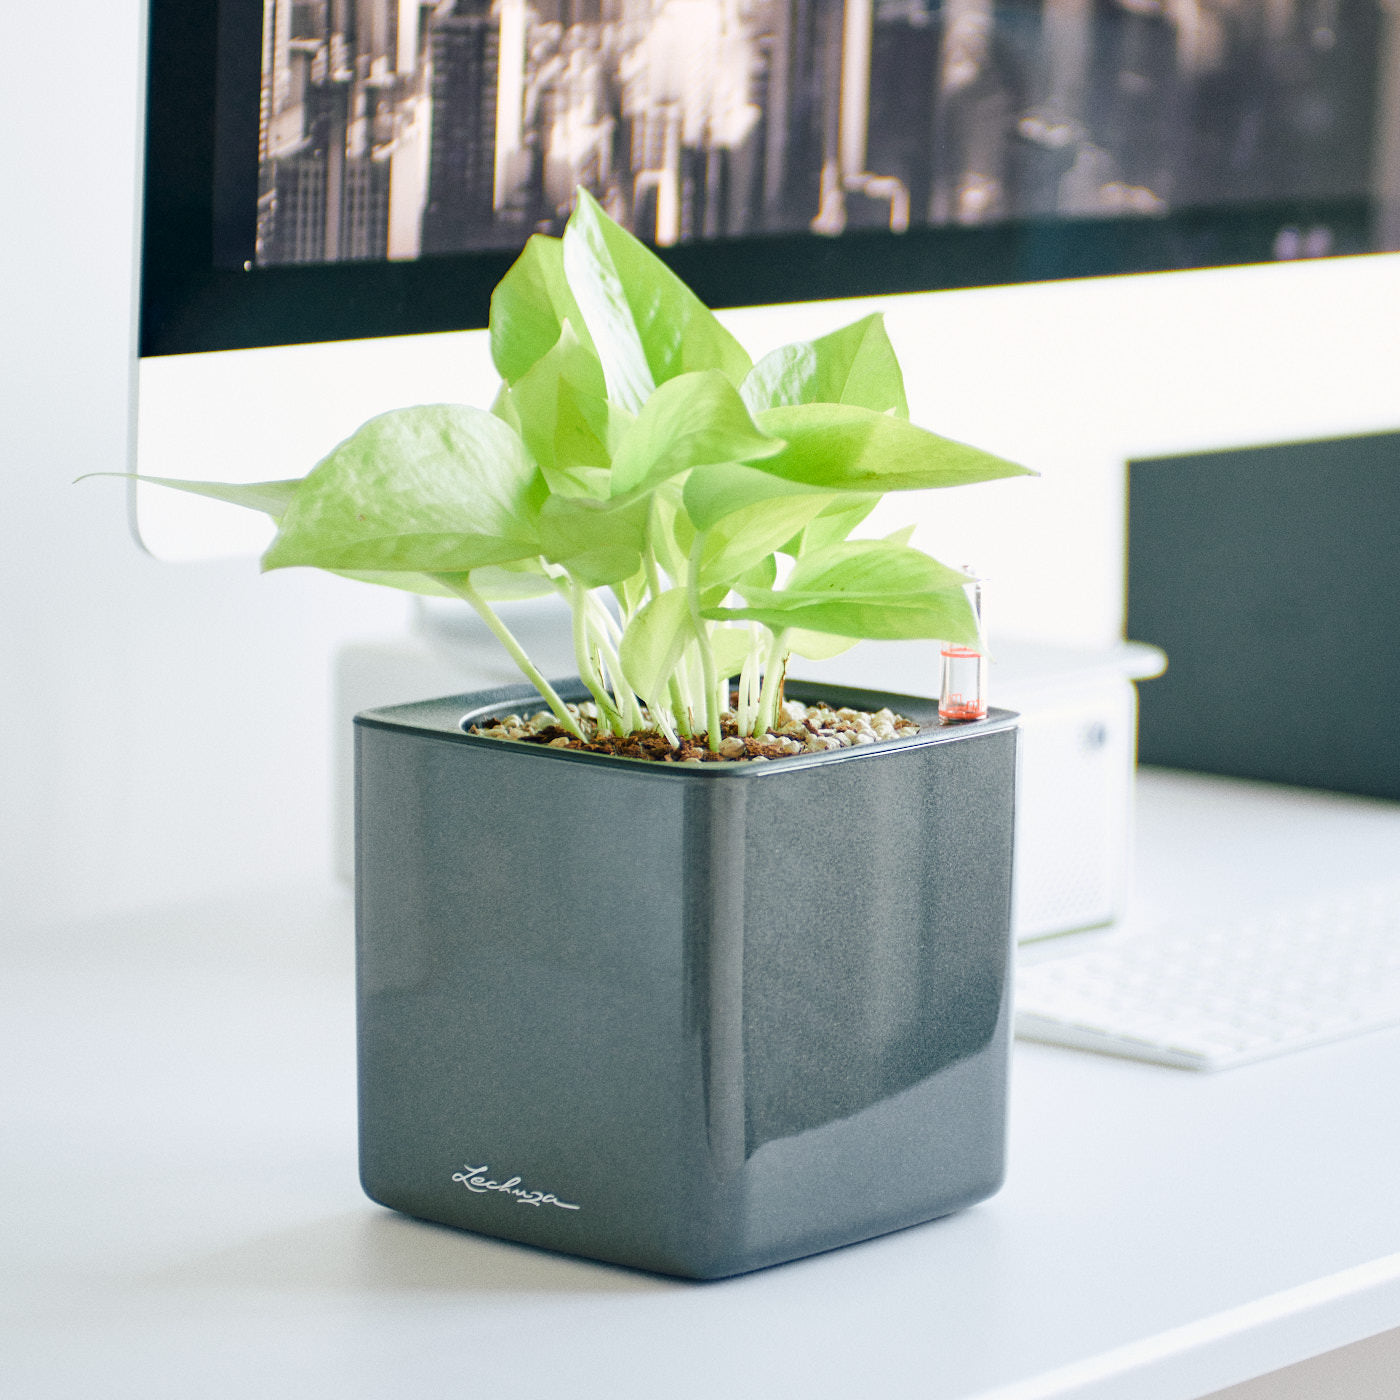 Pothos Neon In Lechuza Cube 14 Glossy Charcoal Planter | My City Plants